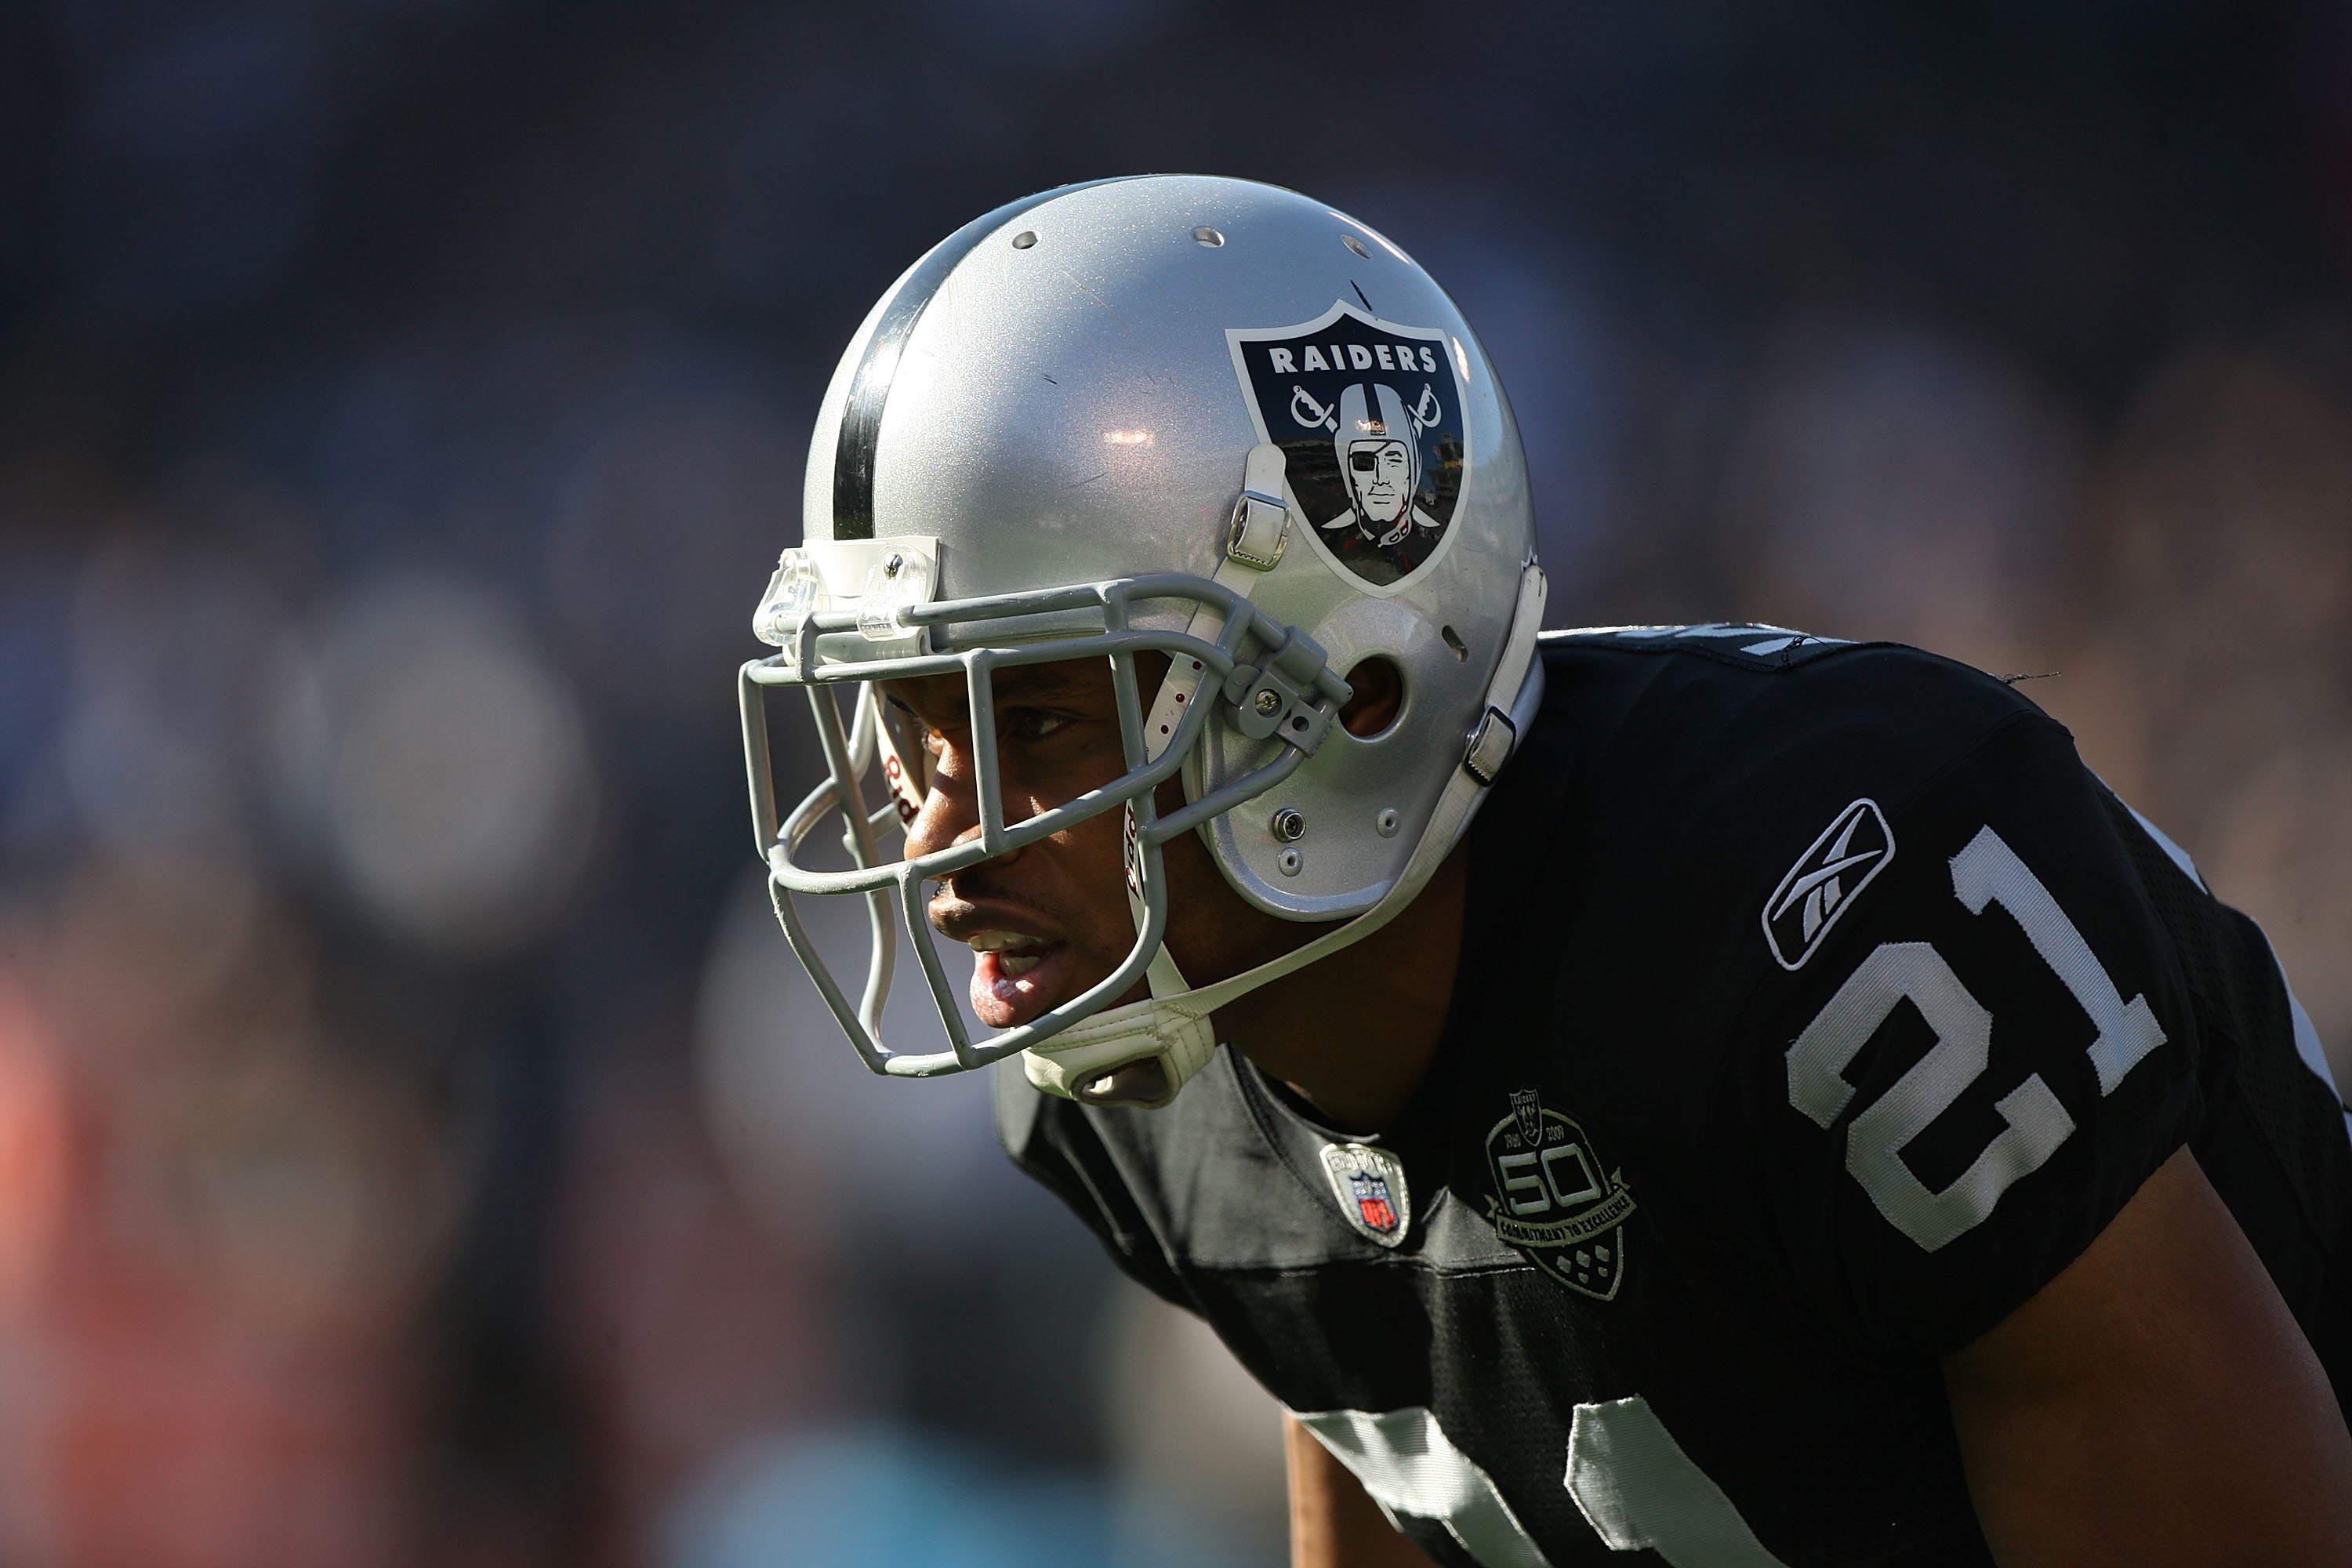 OAKLAND, CA - JANUARY 03:  Nnamdi Asomugha #21 of the Oakland Raiders in action against the Baltimore Ravens during an NFL game at Oakland-Alameda County Coliseum on January 3, 2010 in Oakland, California.  (Photo by Jed Jacobsohn/Getty Images)